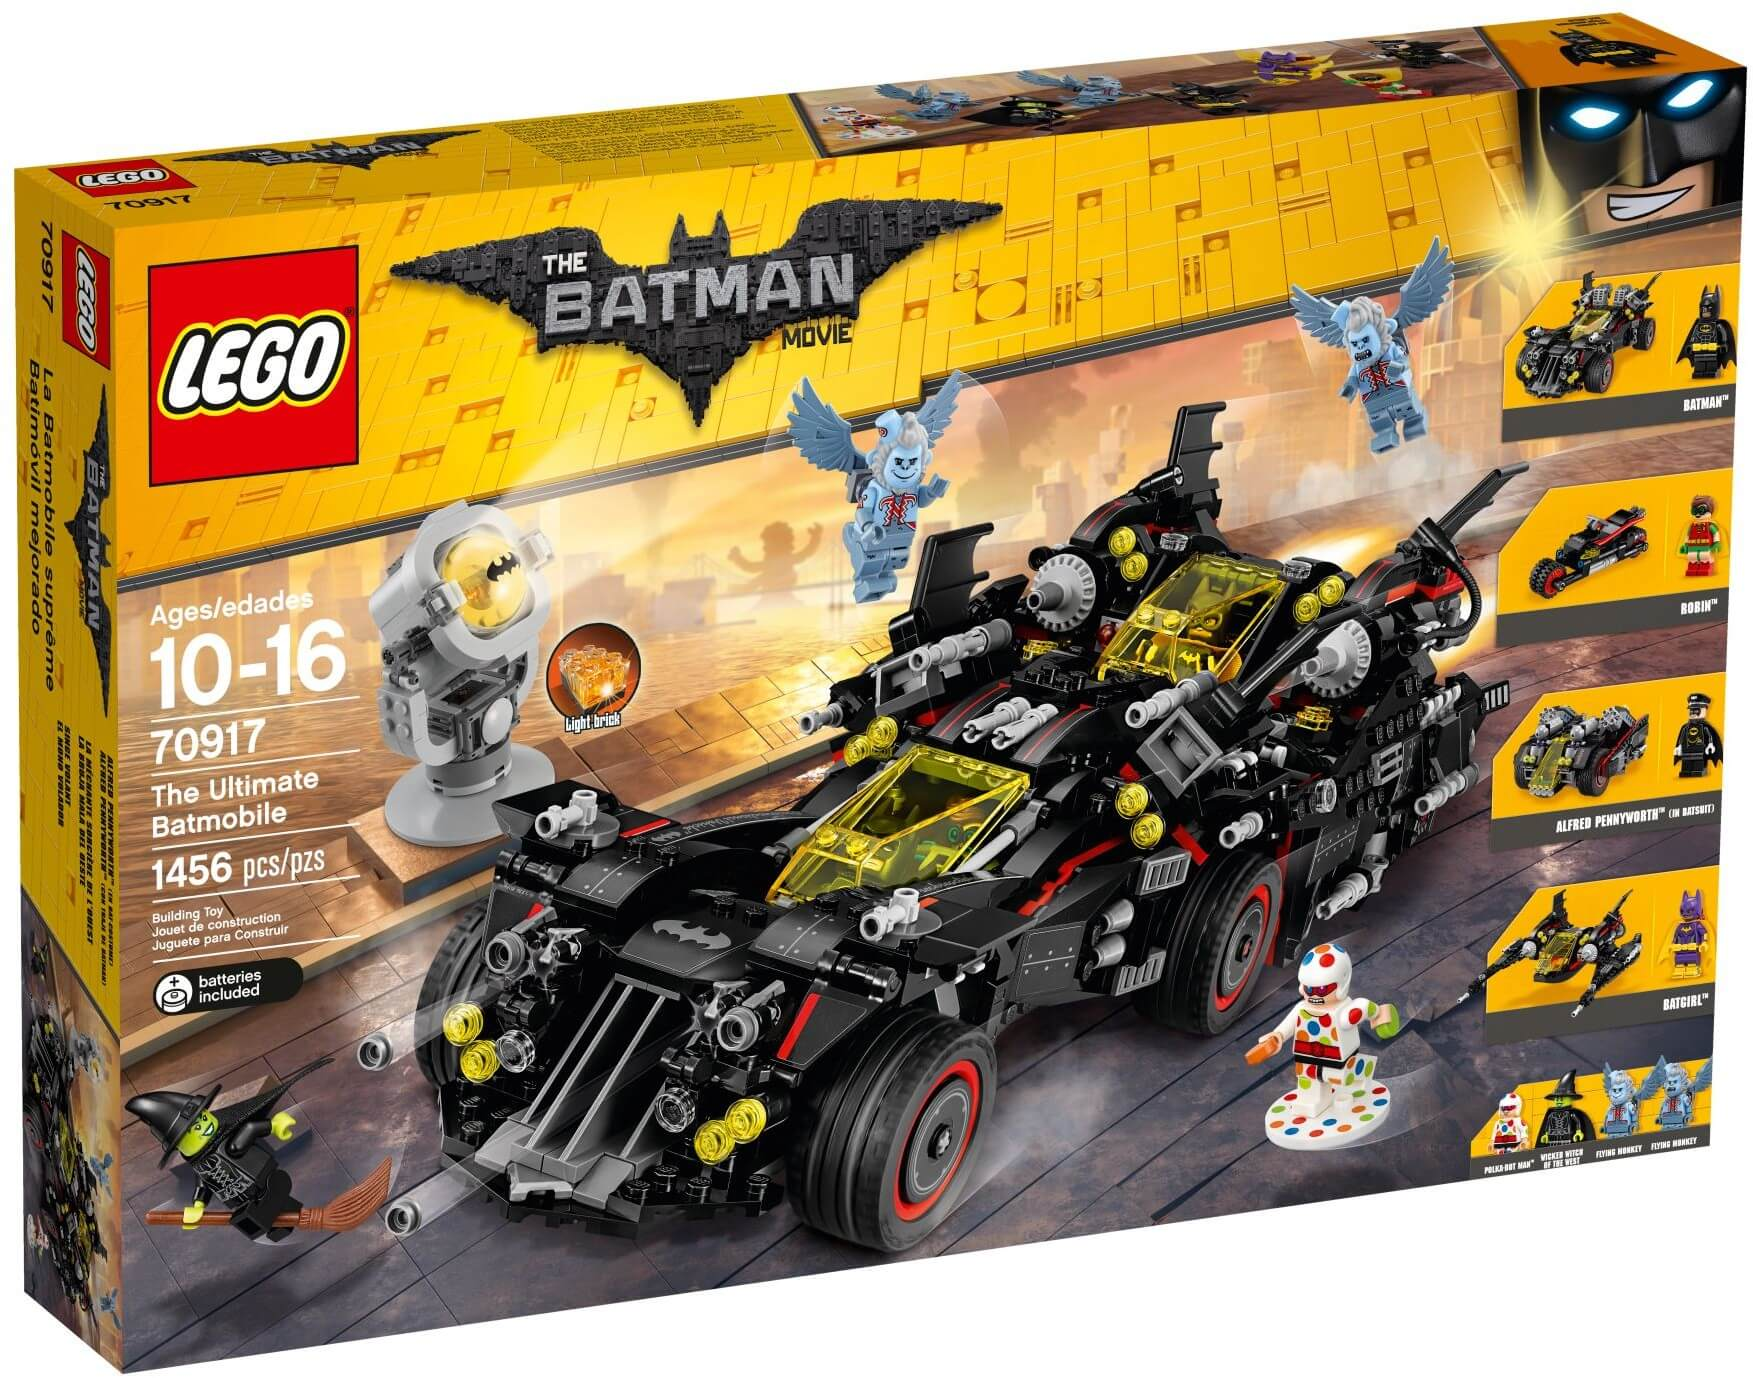 Mua đồ chơi LEGO 70917 - LEGO The Batman Movie 70917 - Siêu Xe Biến Hình Batmobile 4-trong-1 (LEGO The Batman Movie The Ultimate Batmobile)